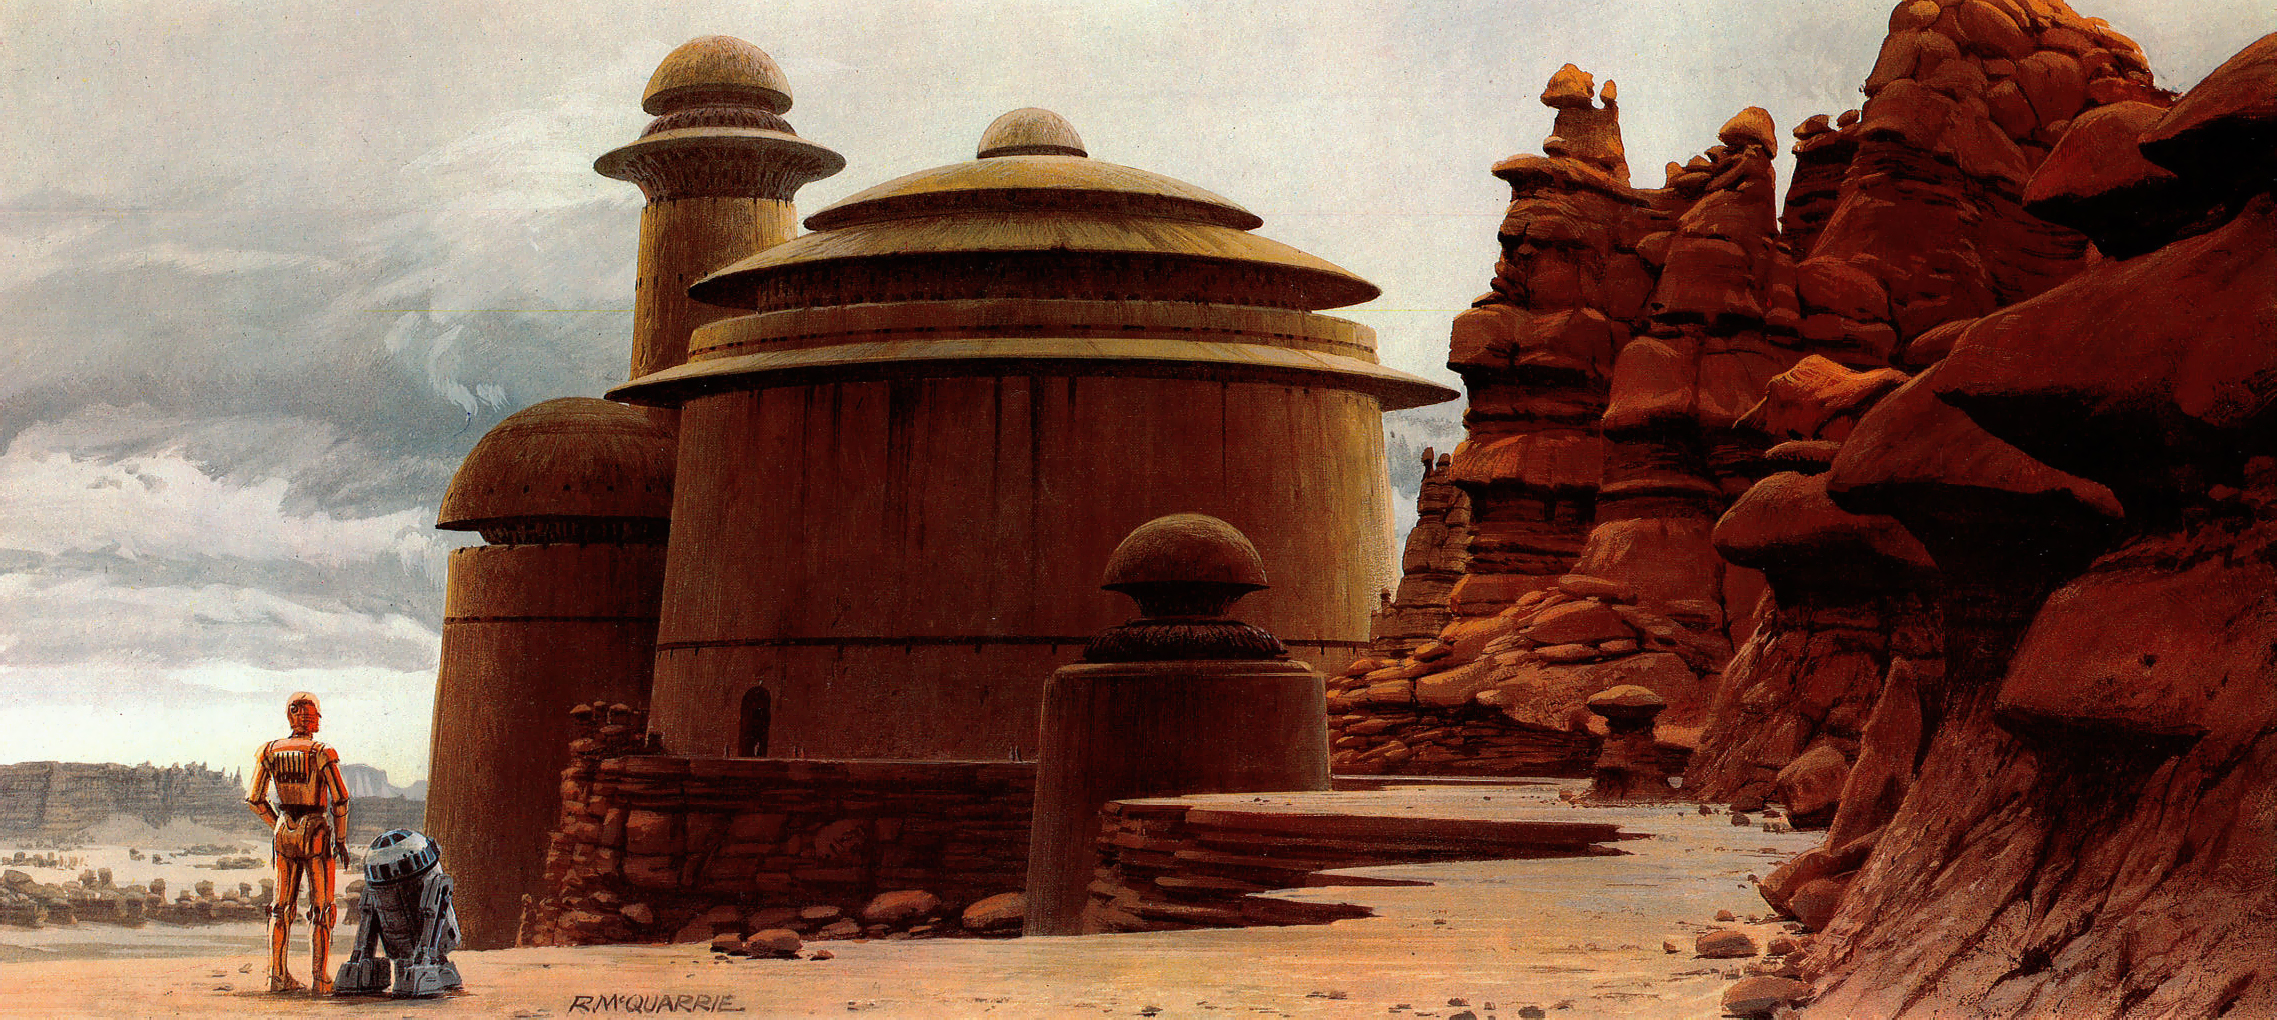 ROTJ 30th Anniversary: Jabba's Palace: Where Are They Now?